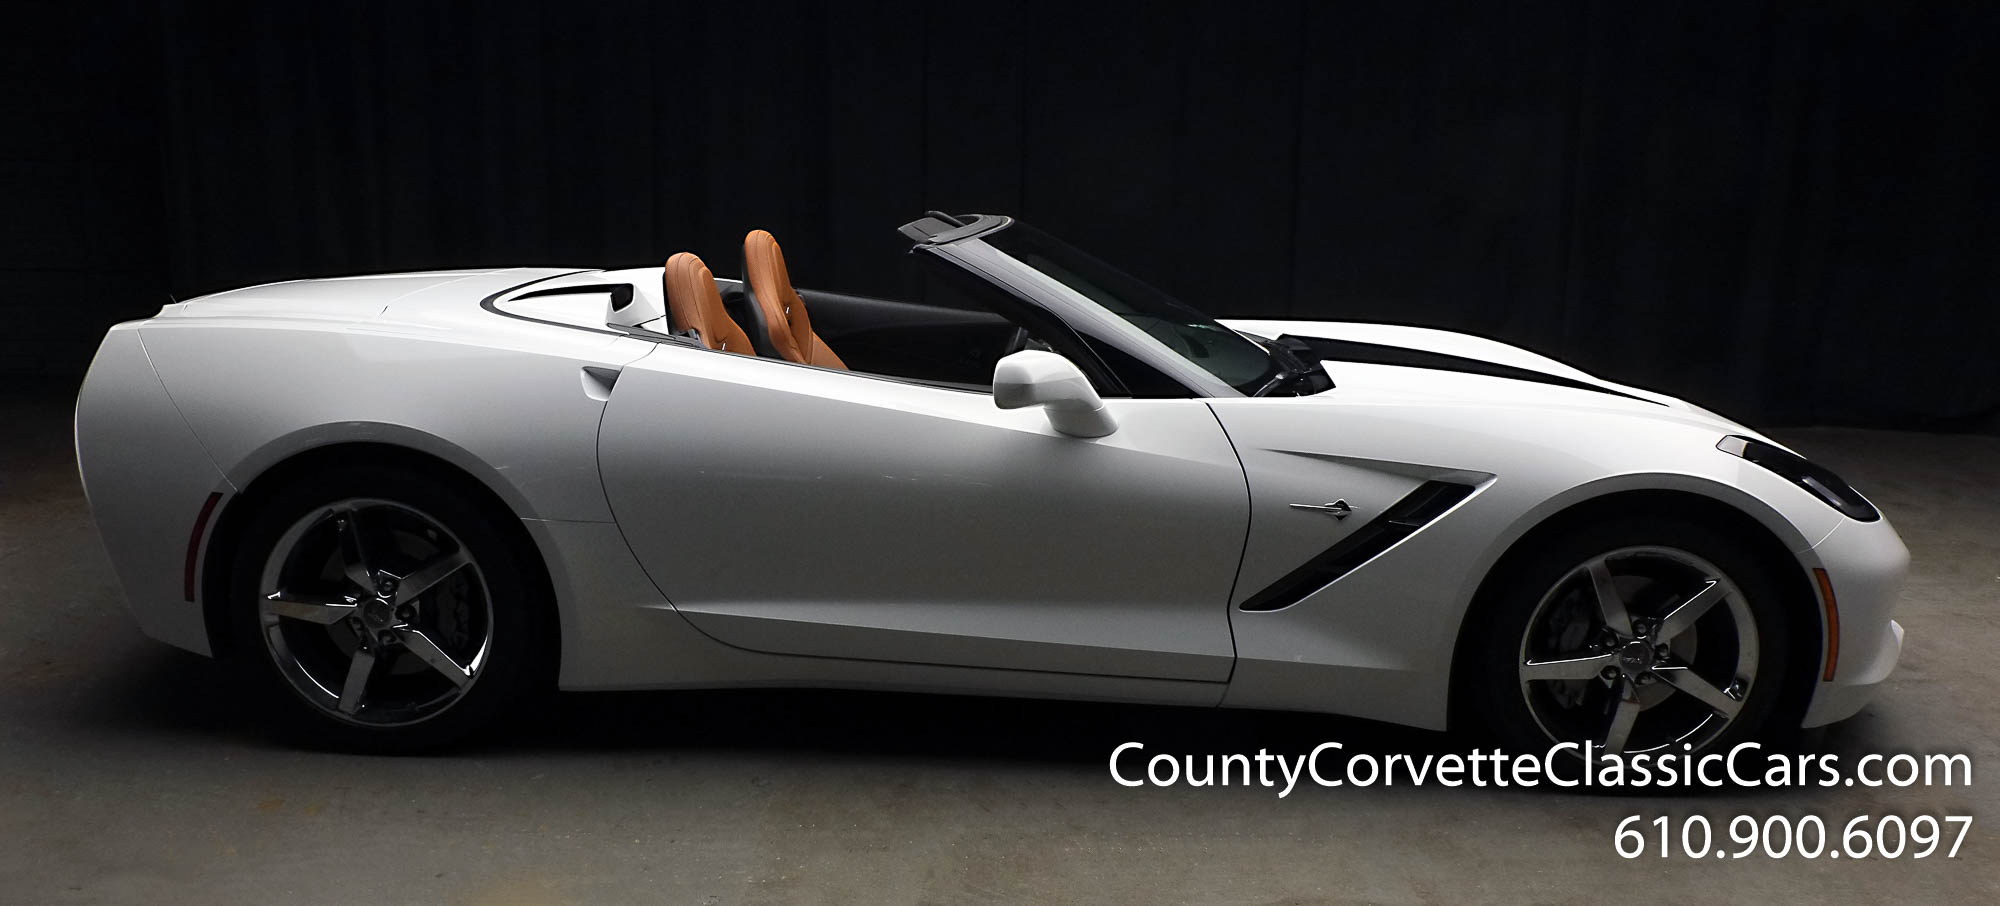 2014-Corvette-Stingray-Convertible-41.jpg